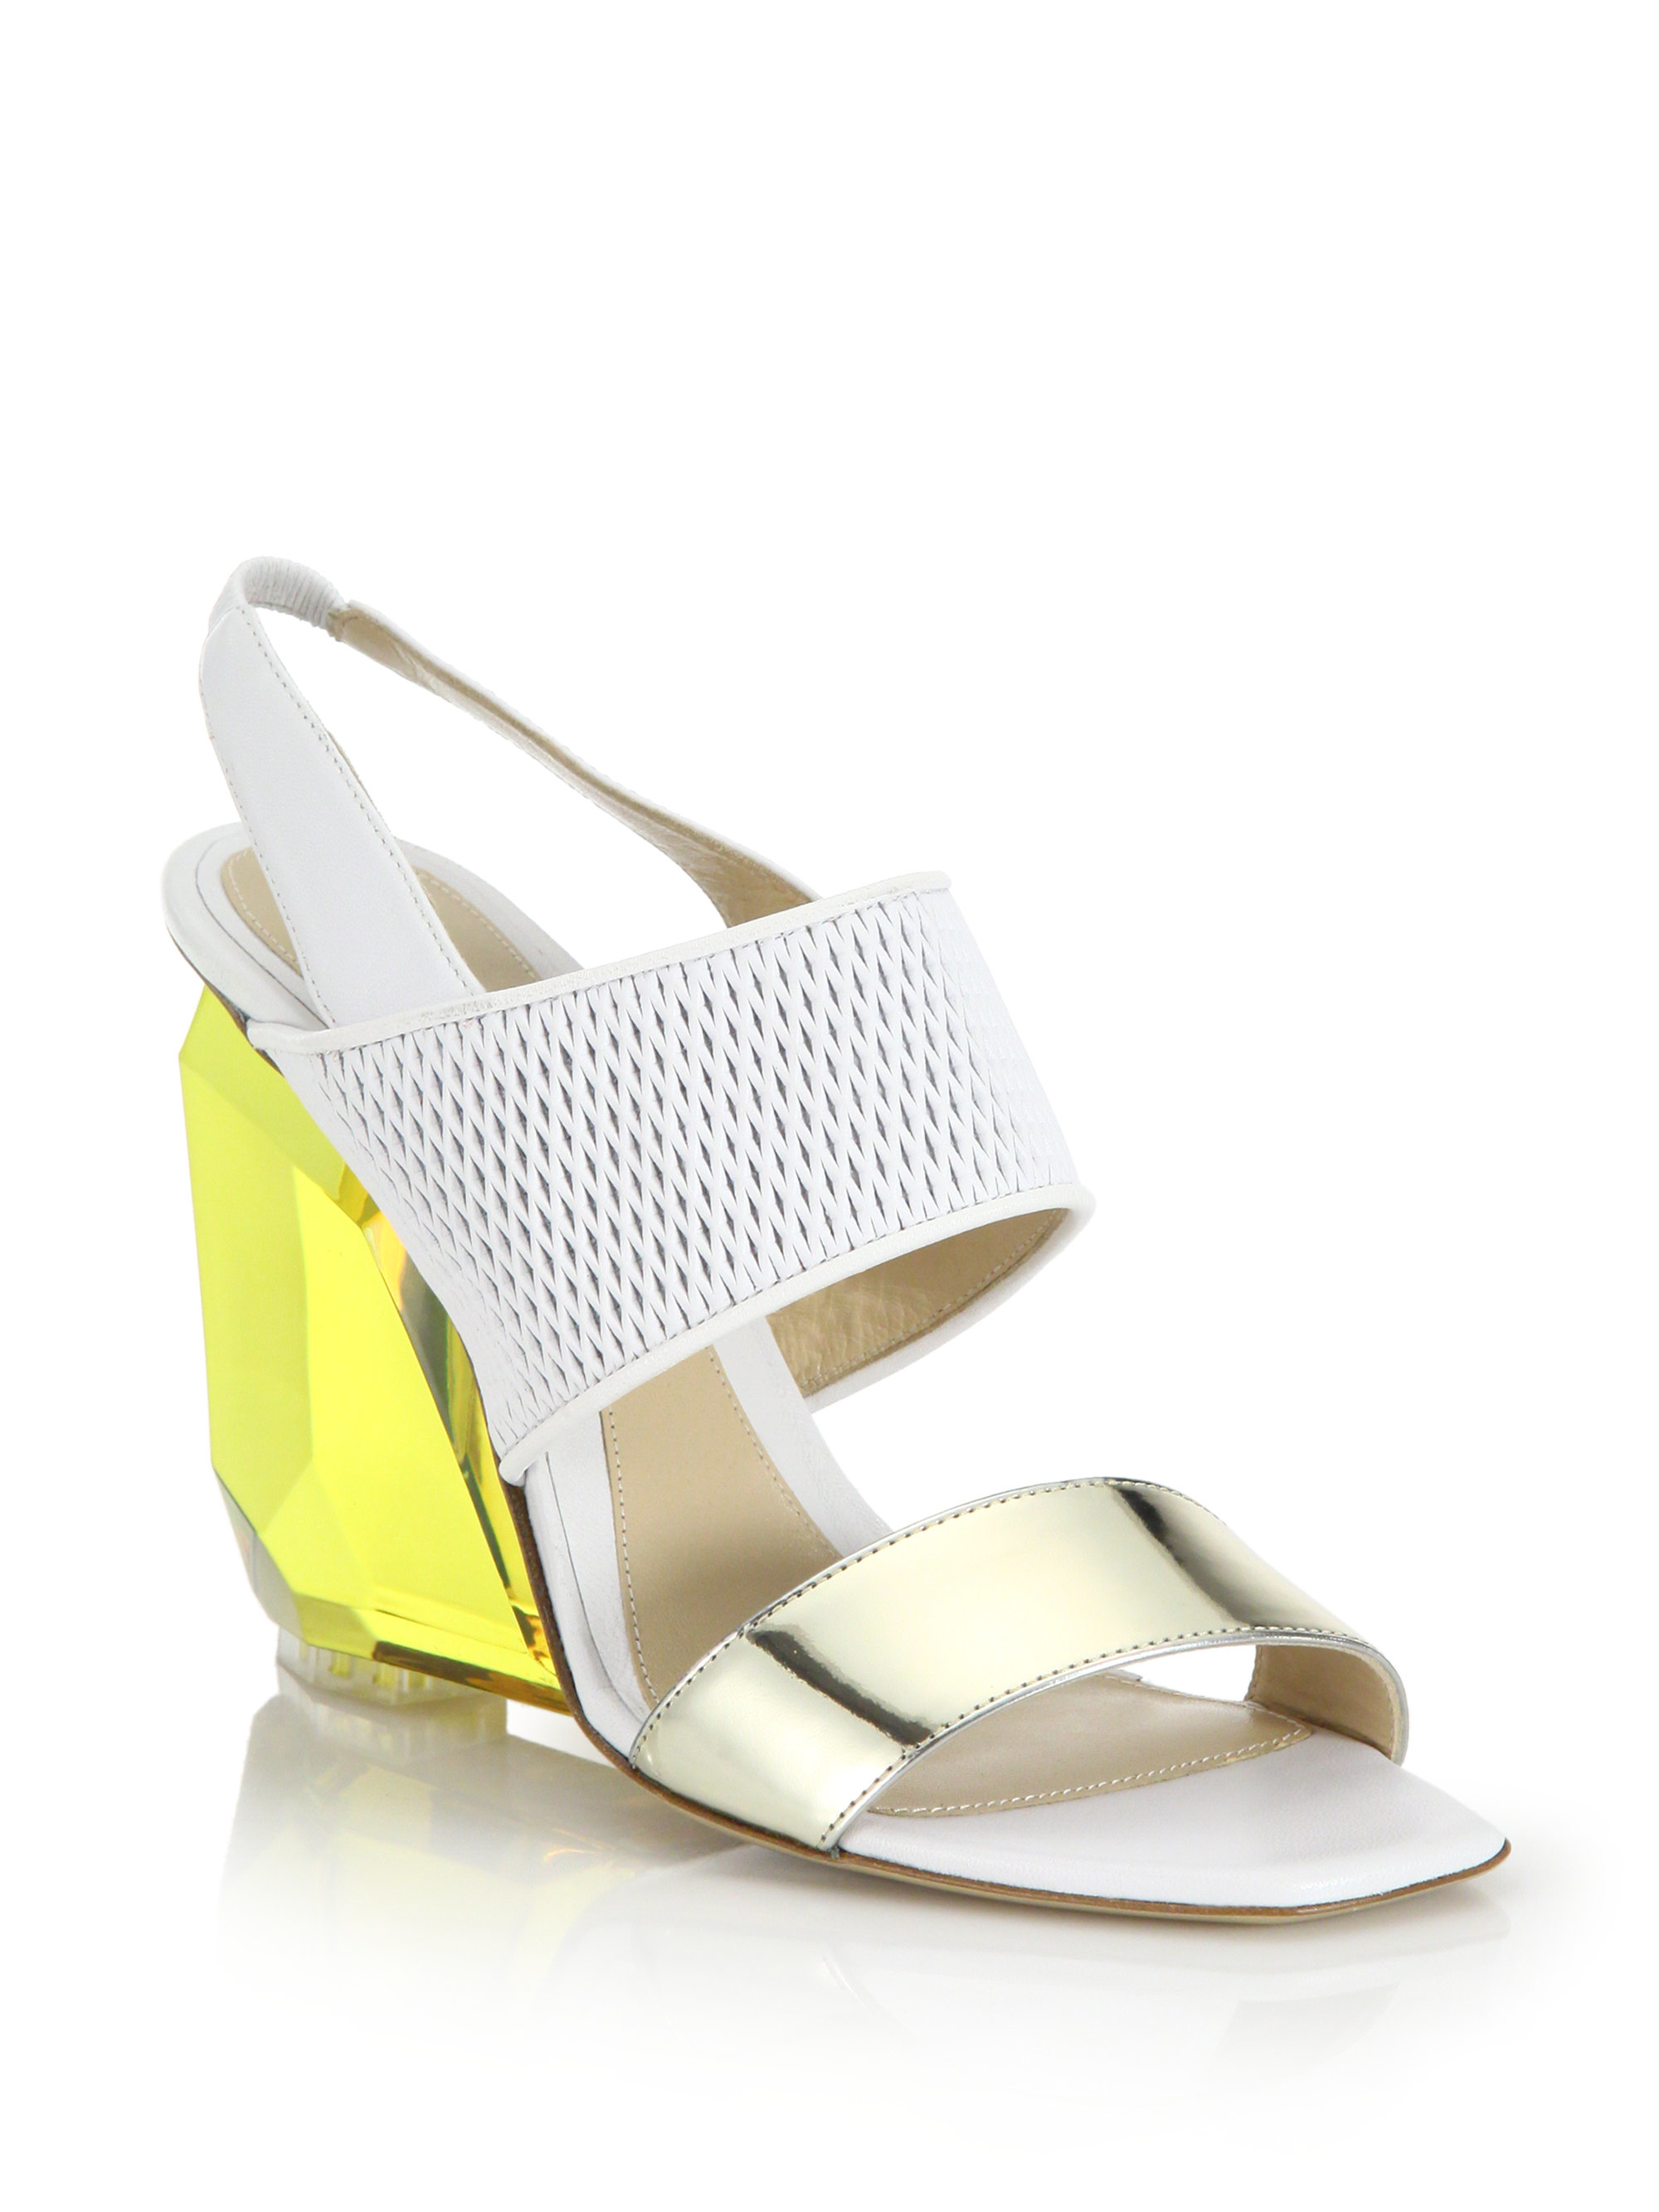 lhuillier peyton lucite wedge slingback sandals lyst